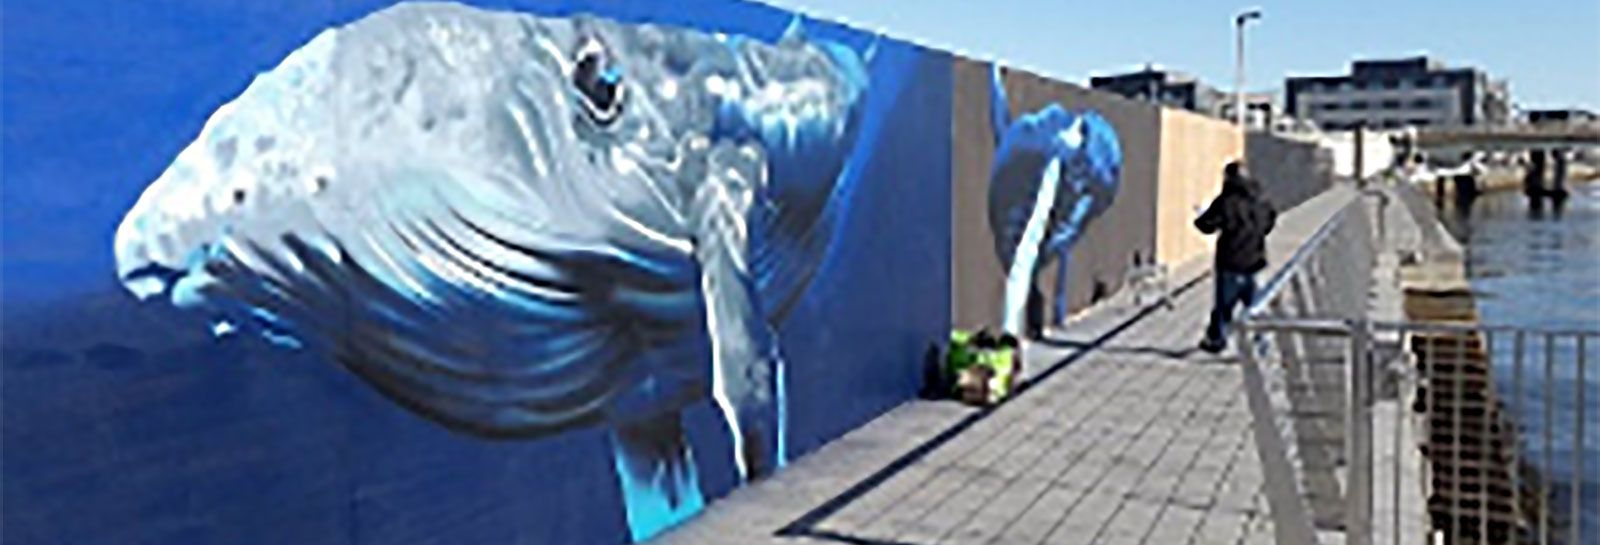 A whale mural at Dundee shoreline banner image